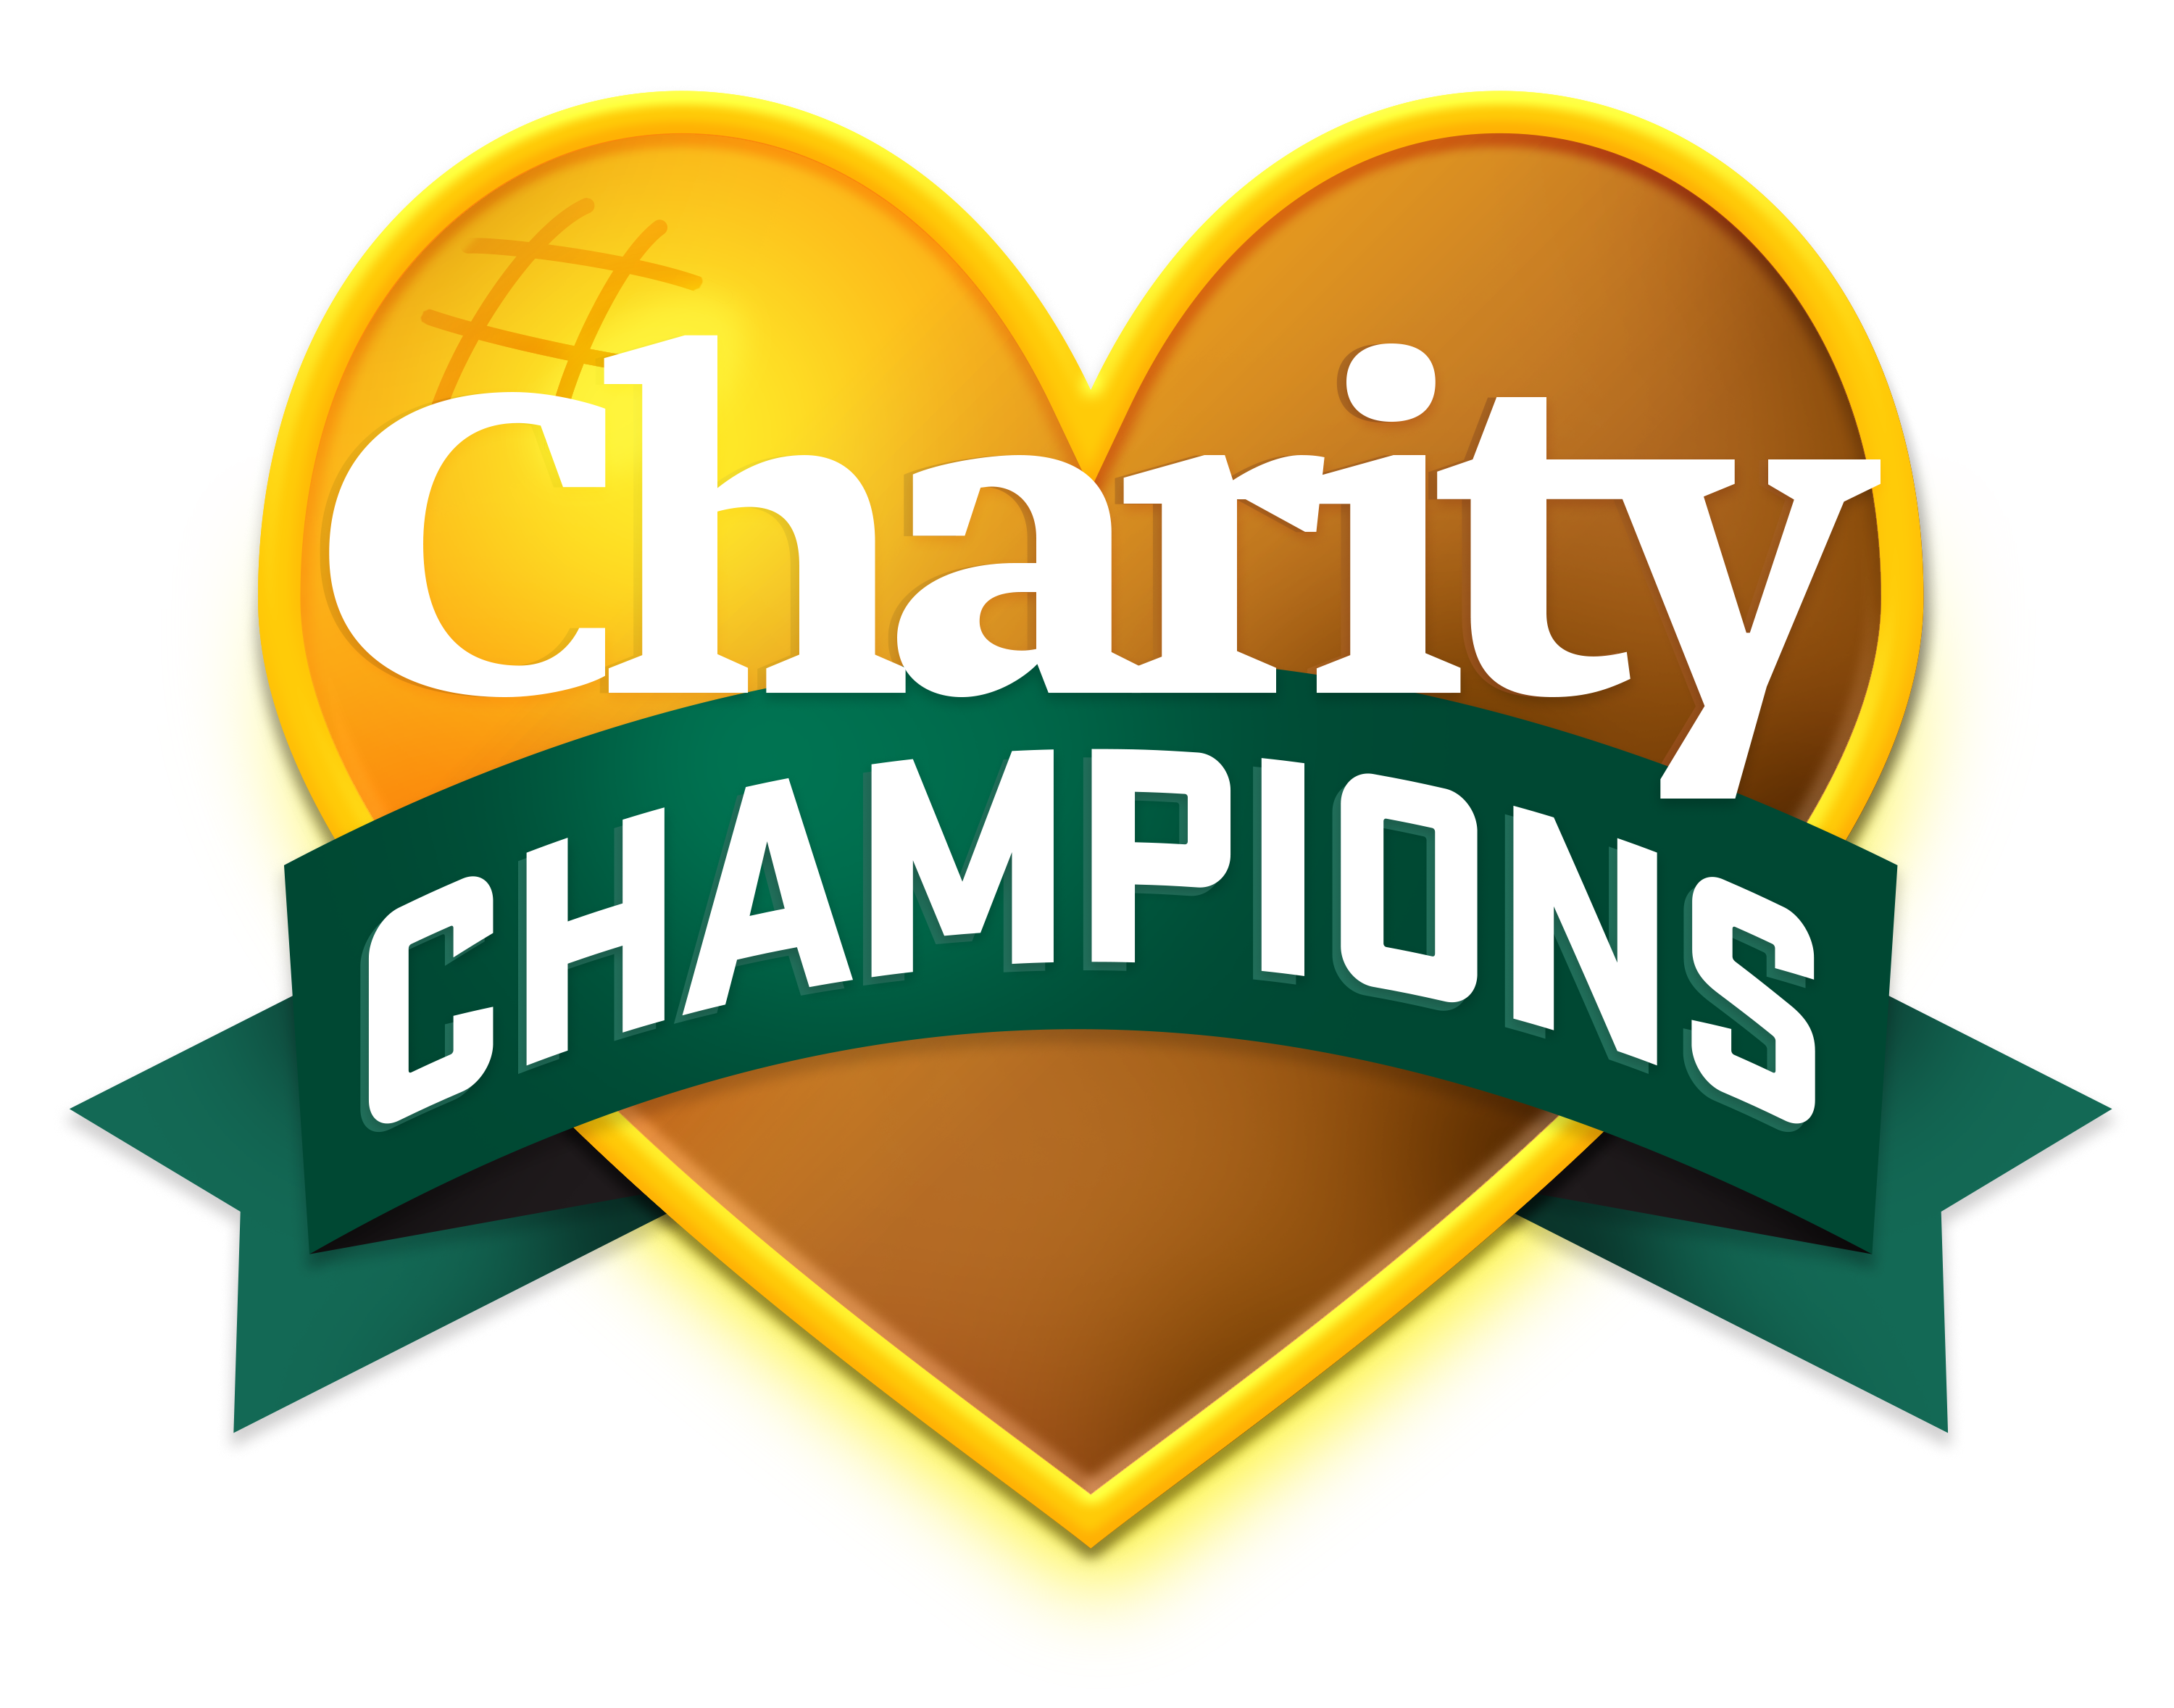 baylor tfnb charity champions expands dale smith hired